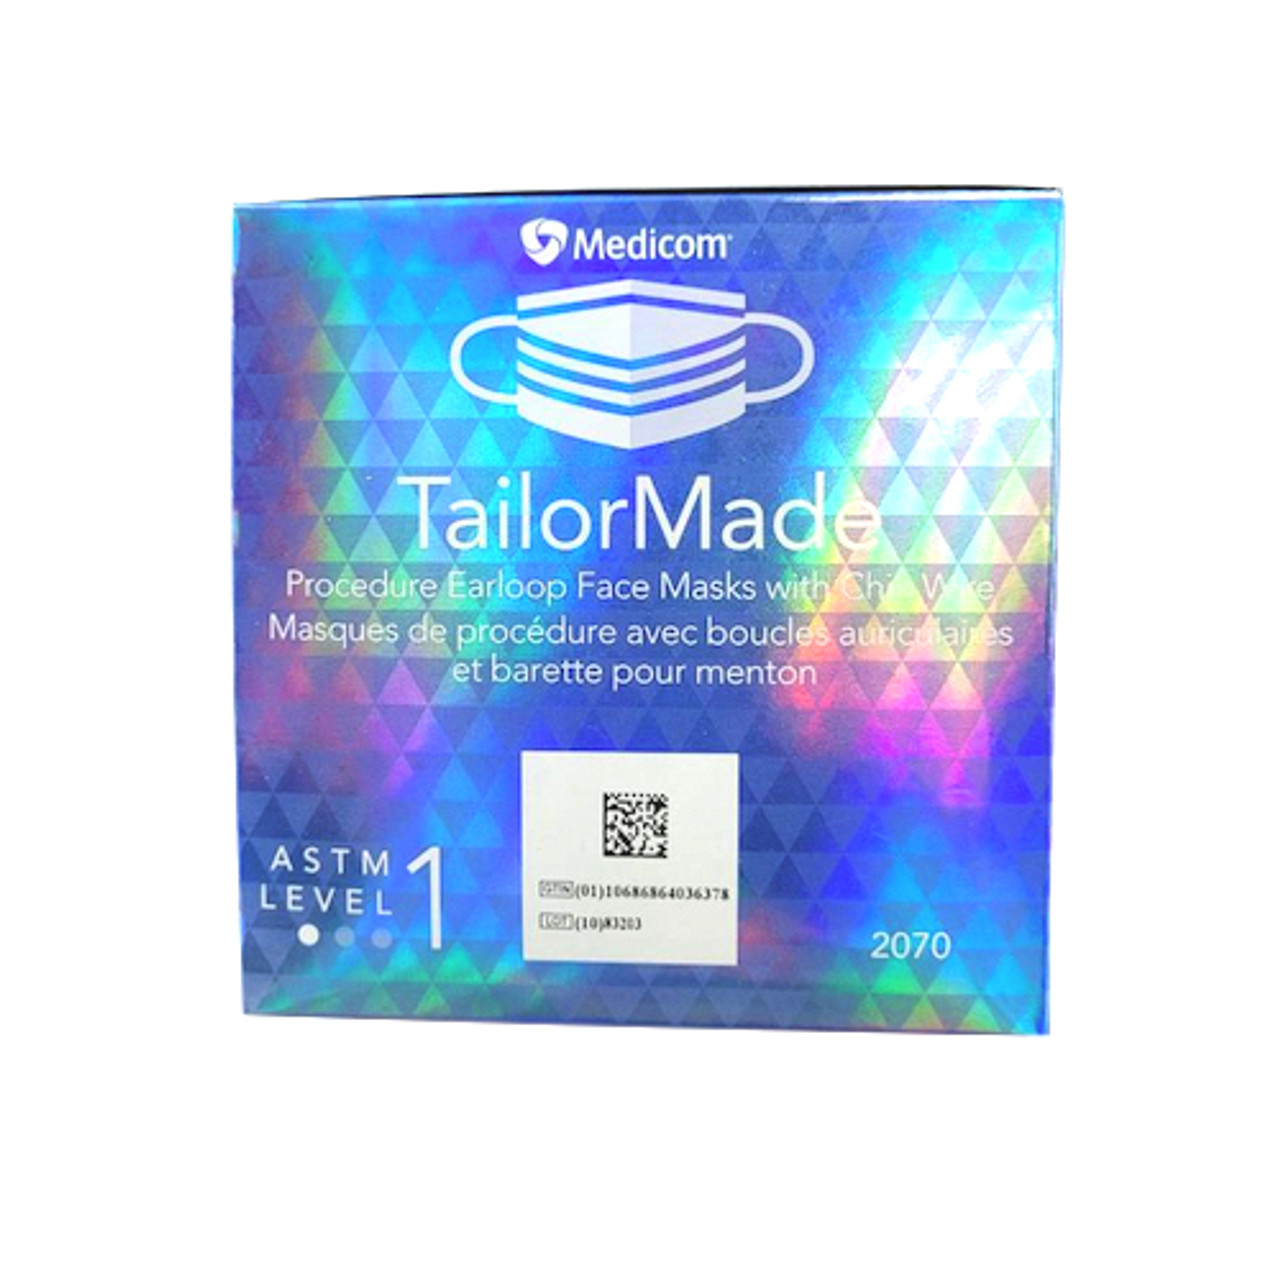 Medicom TailorMade 3Ply Earloop Face Mask With Chin Wire Blue 50/Box